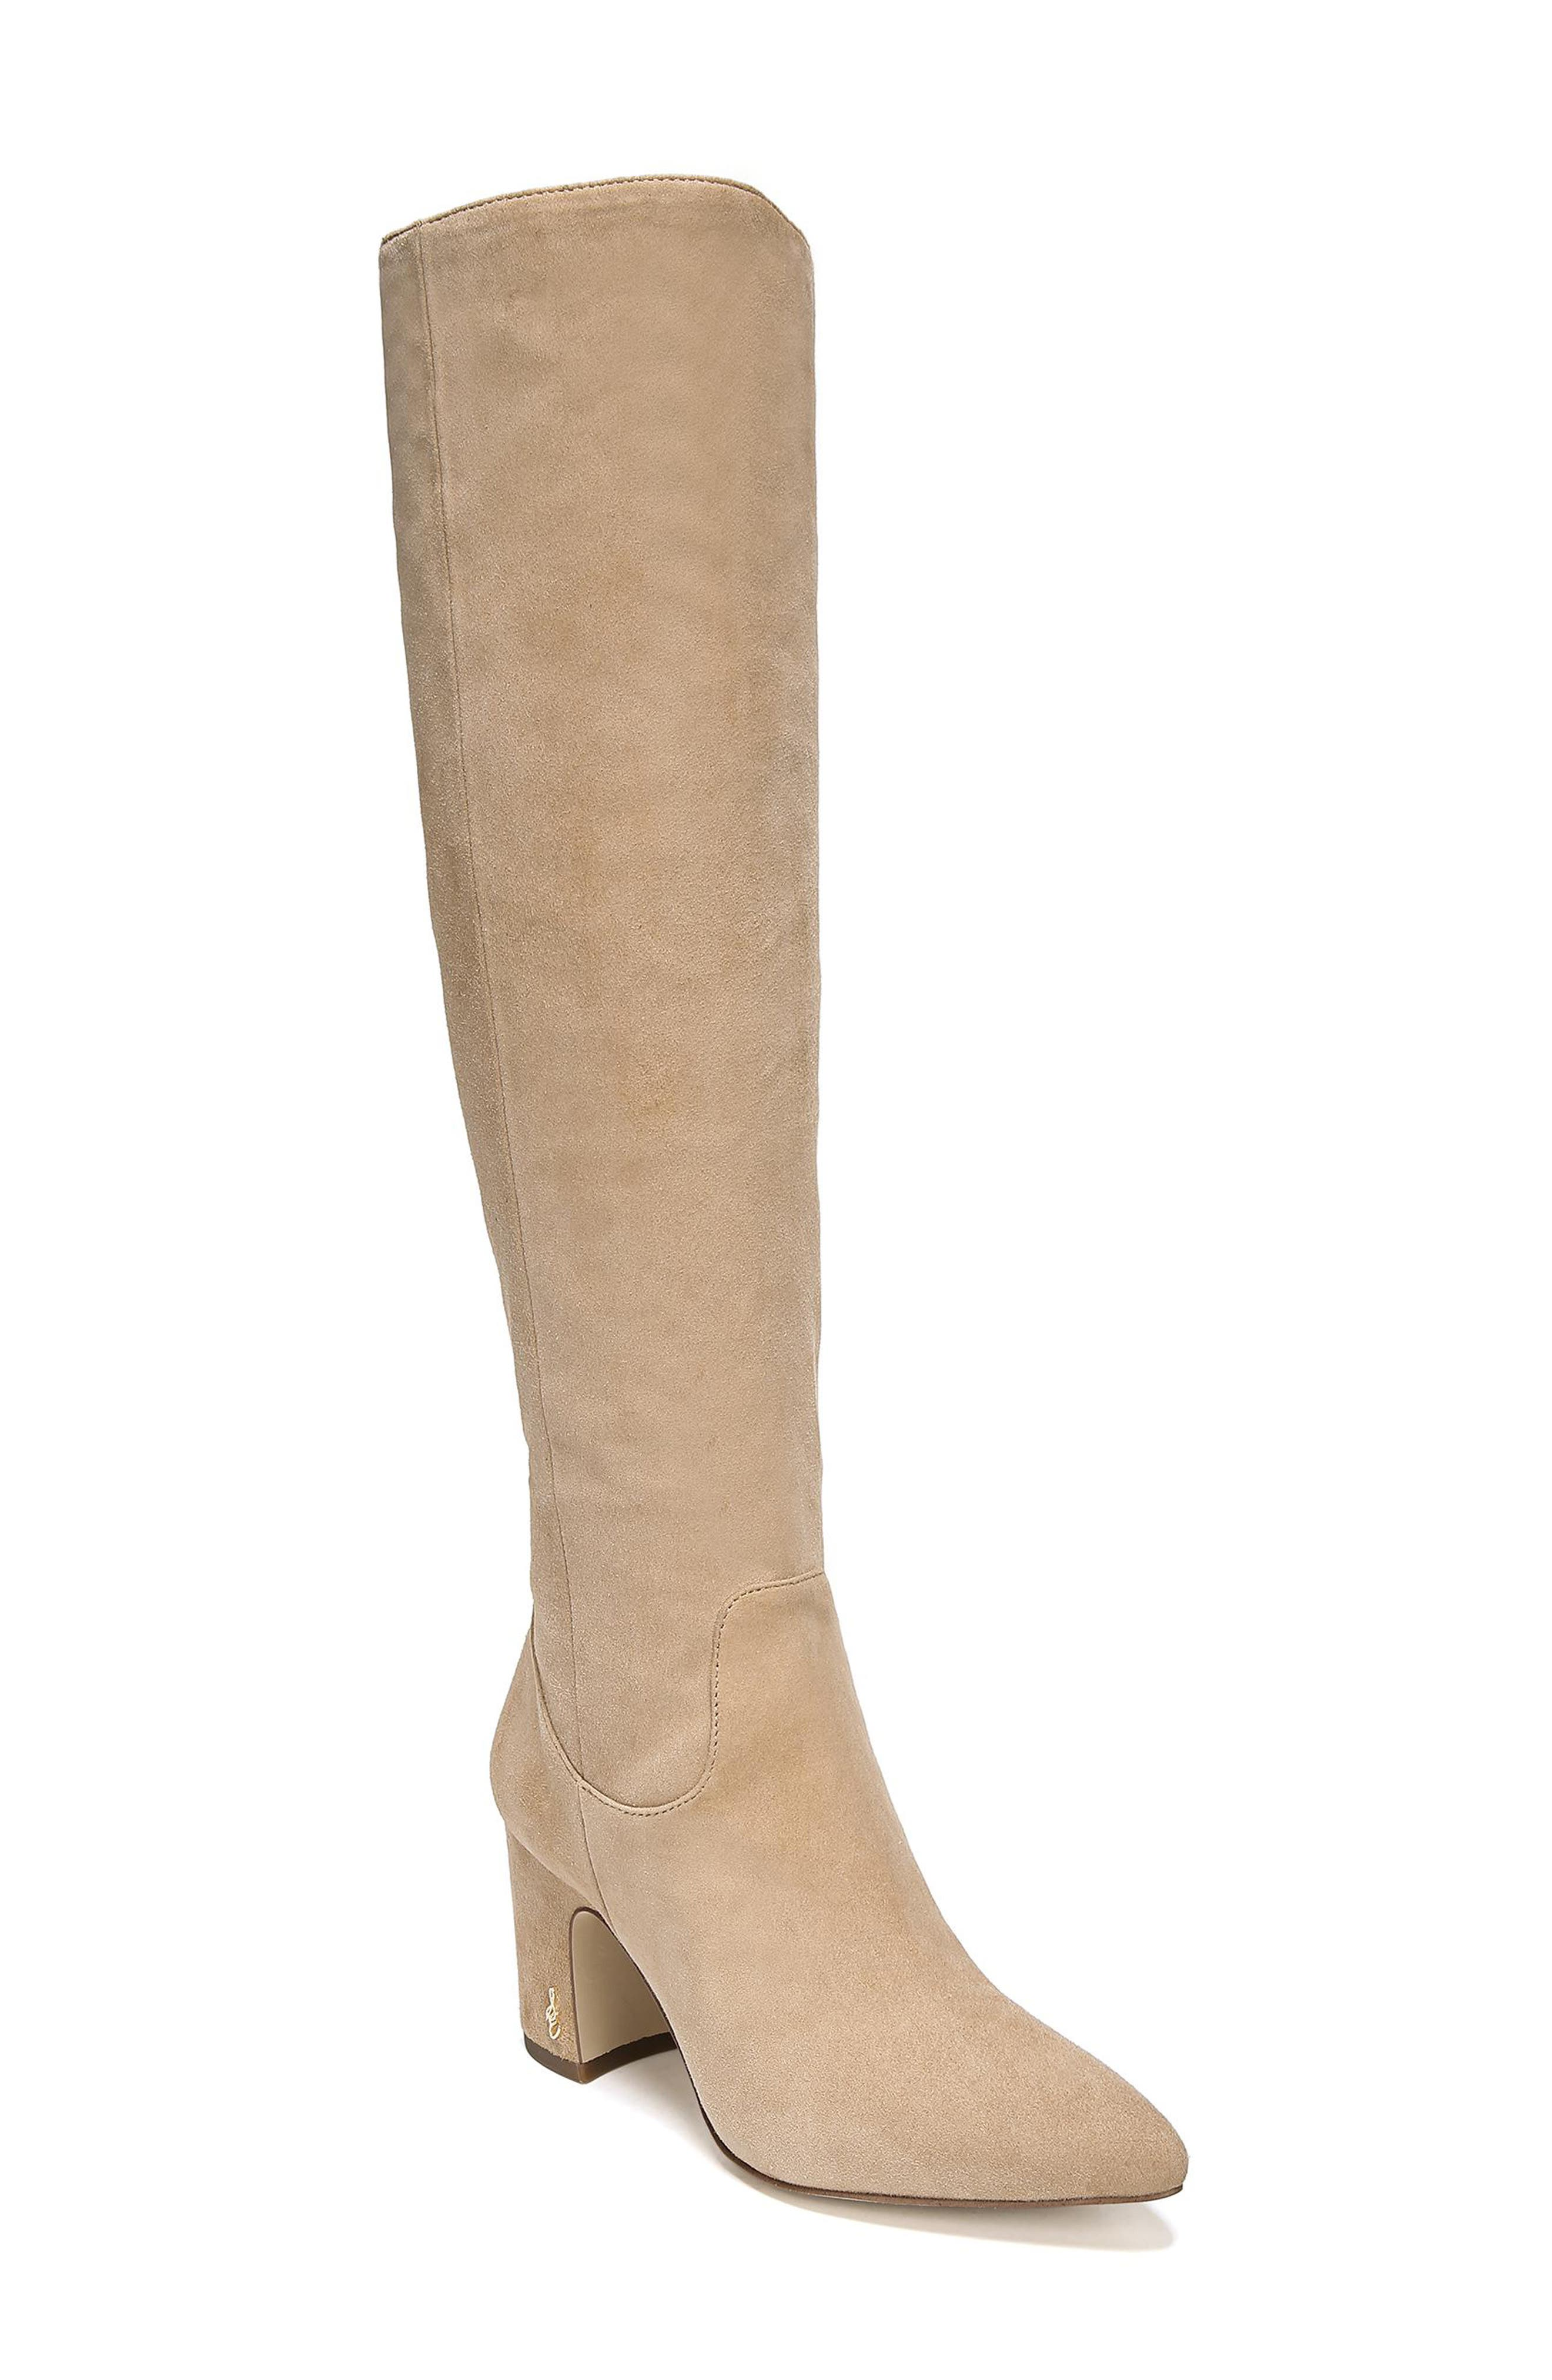 Sam Edelman Hai Knee High Boot, Beige